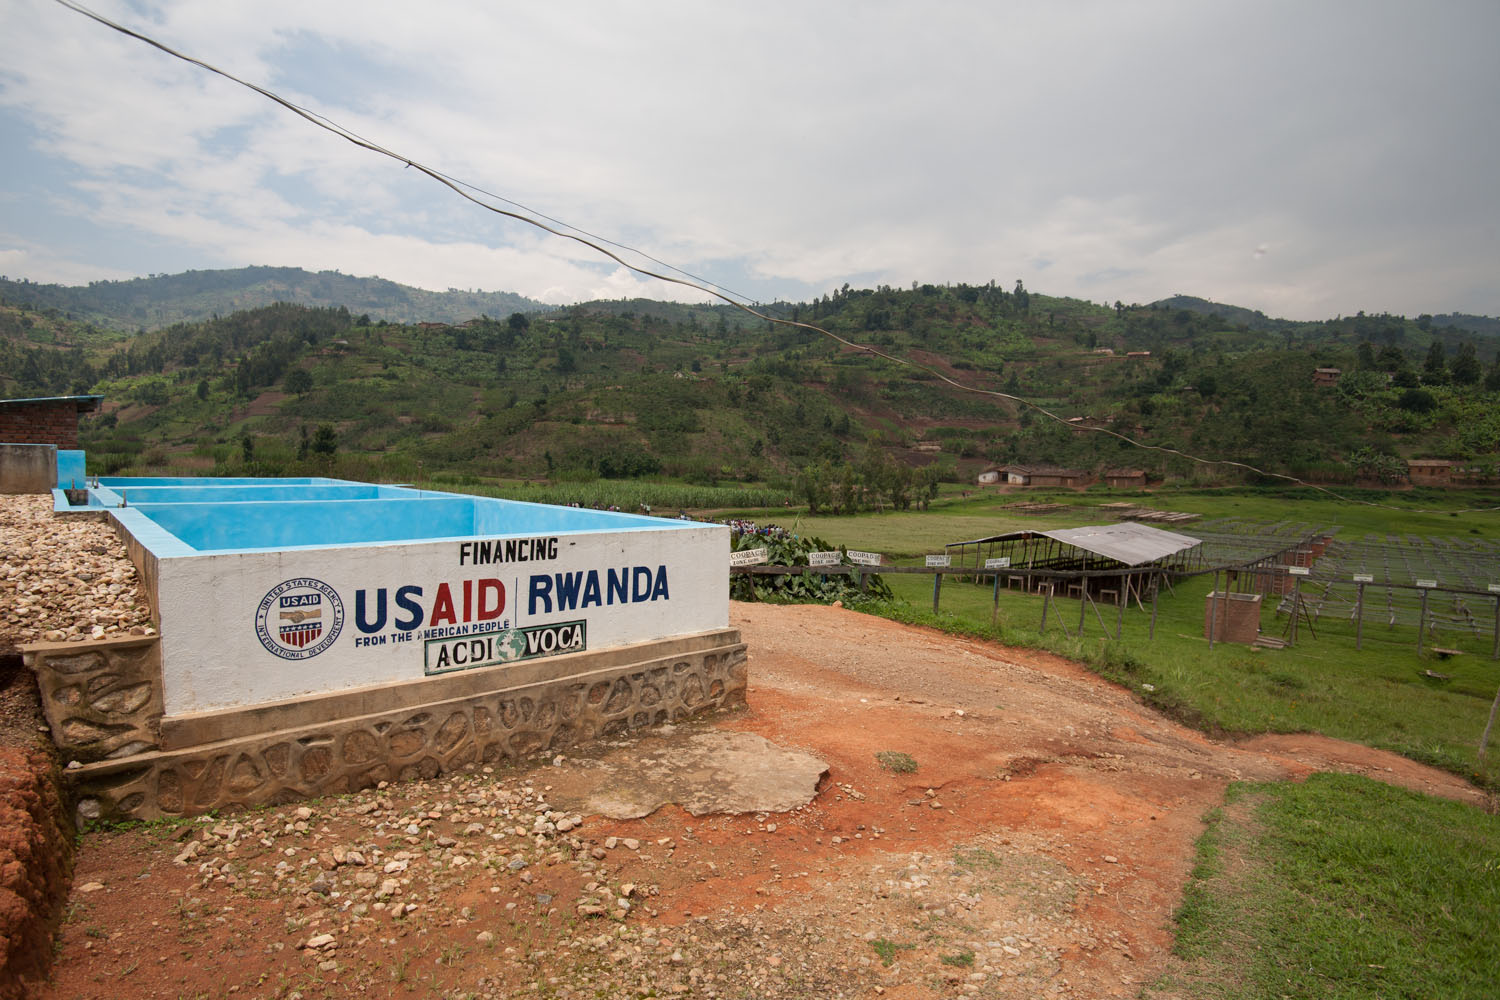 usaid washingstation